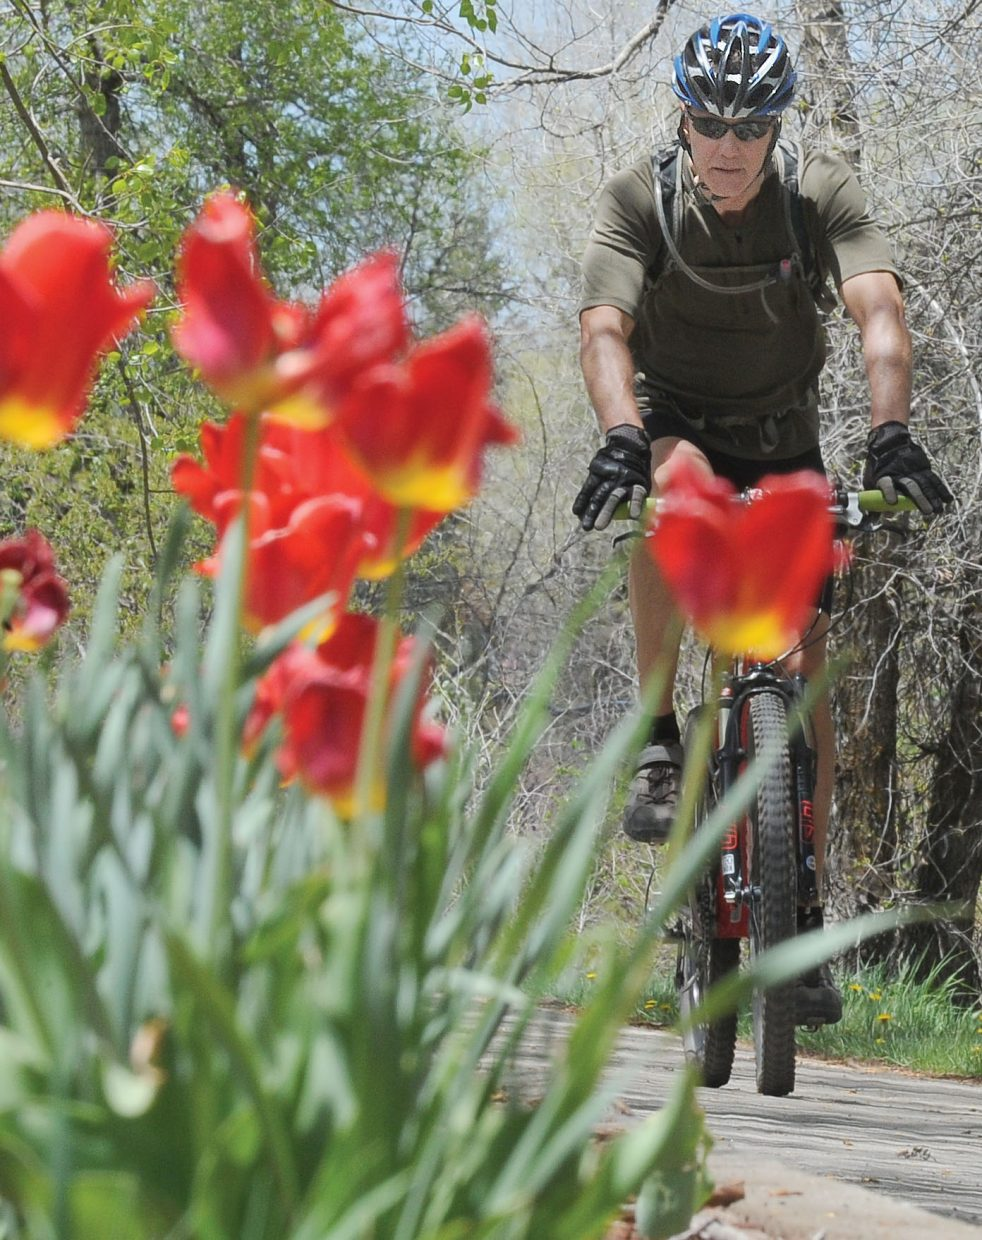 Steamboat Springs resident Craig Olsheim rides his bike past the flowers on the Yampa River Core Trail on Thursday afternoon.